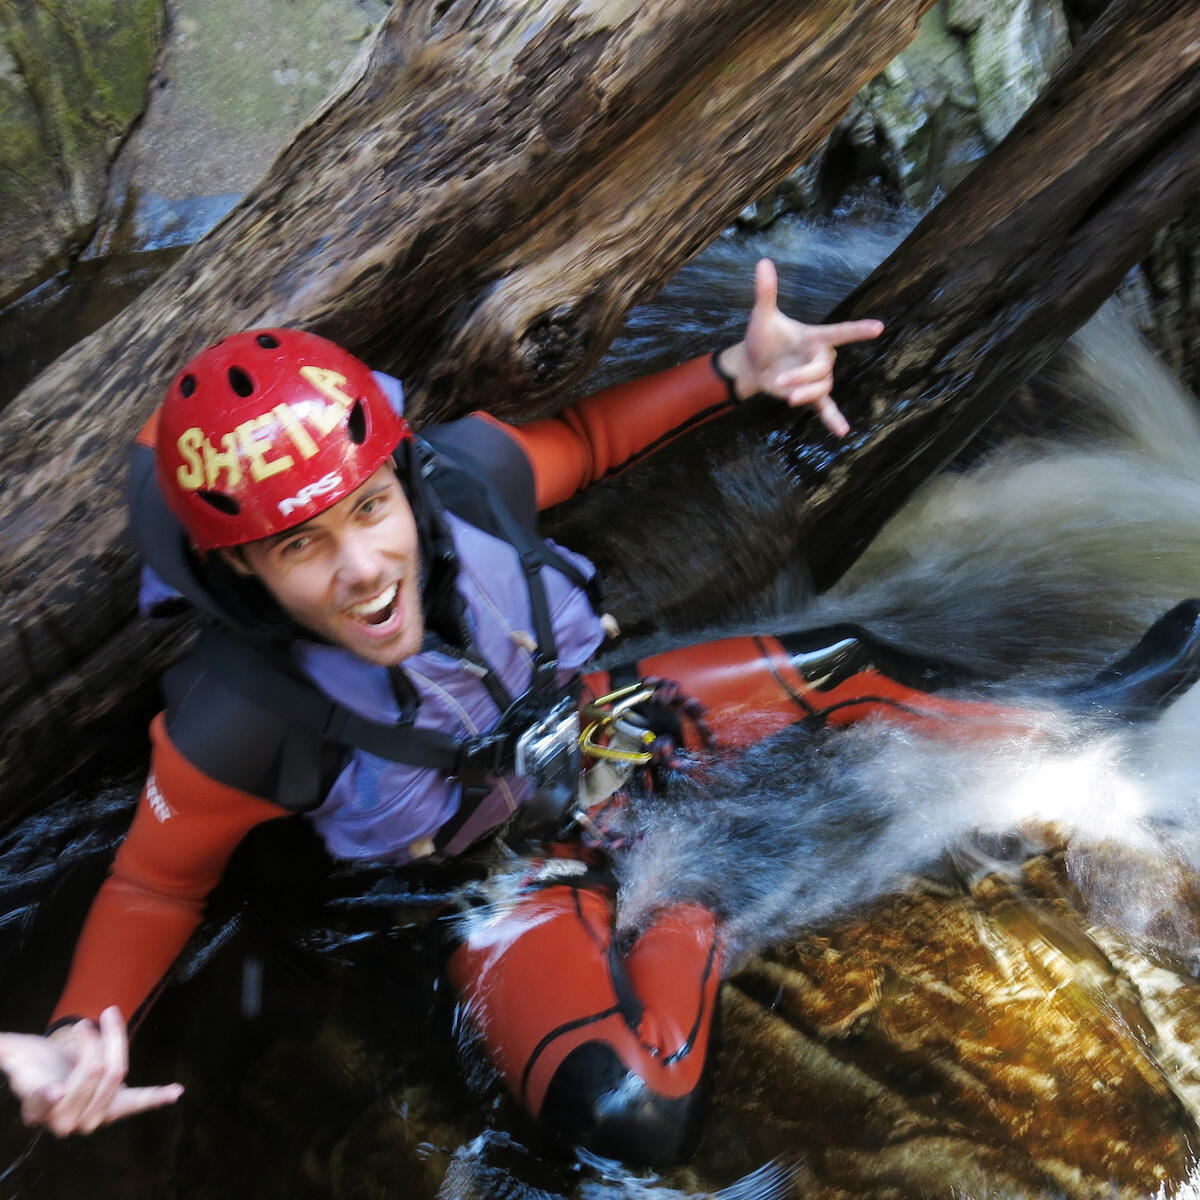 man on adventure activities in water at Cradle Mountain hotel